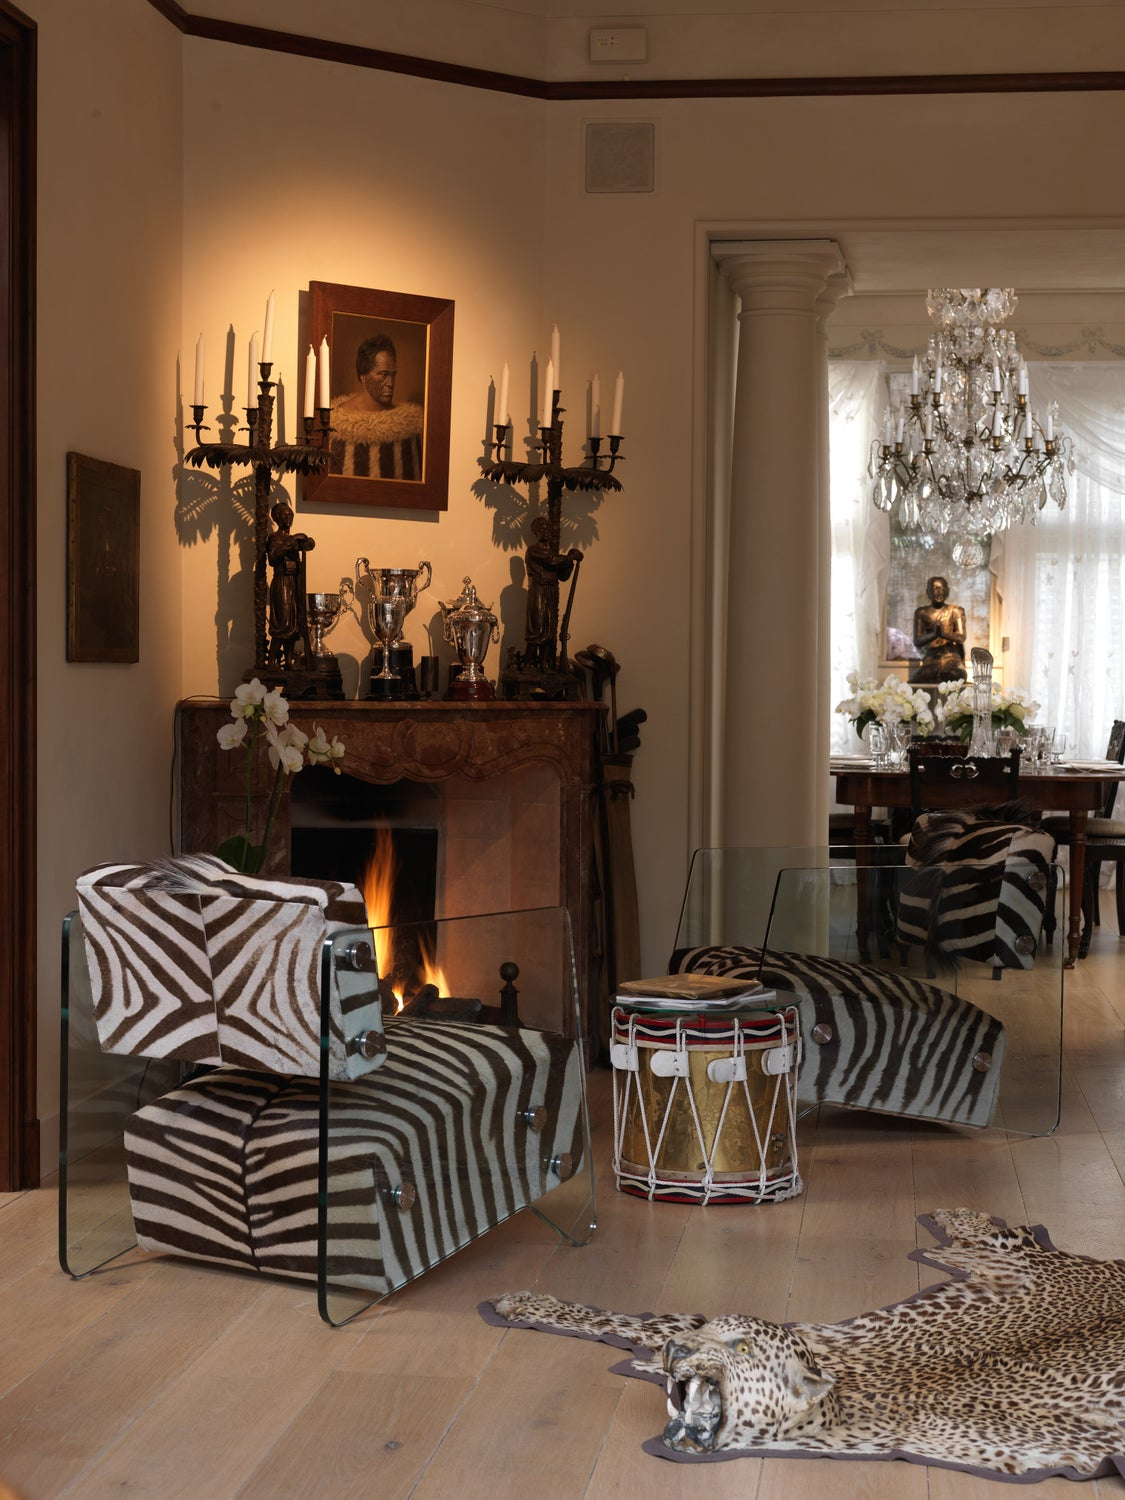 Living Room by Riviere Interiors on 1stdibs